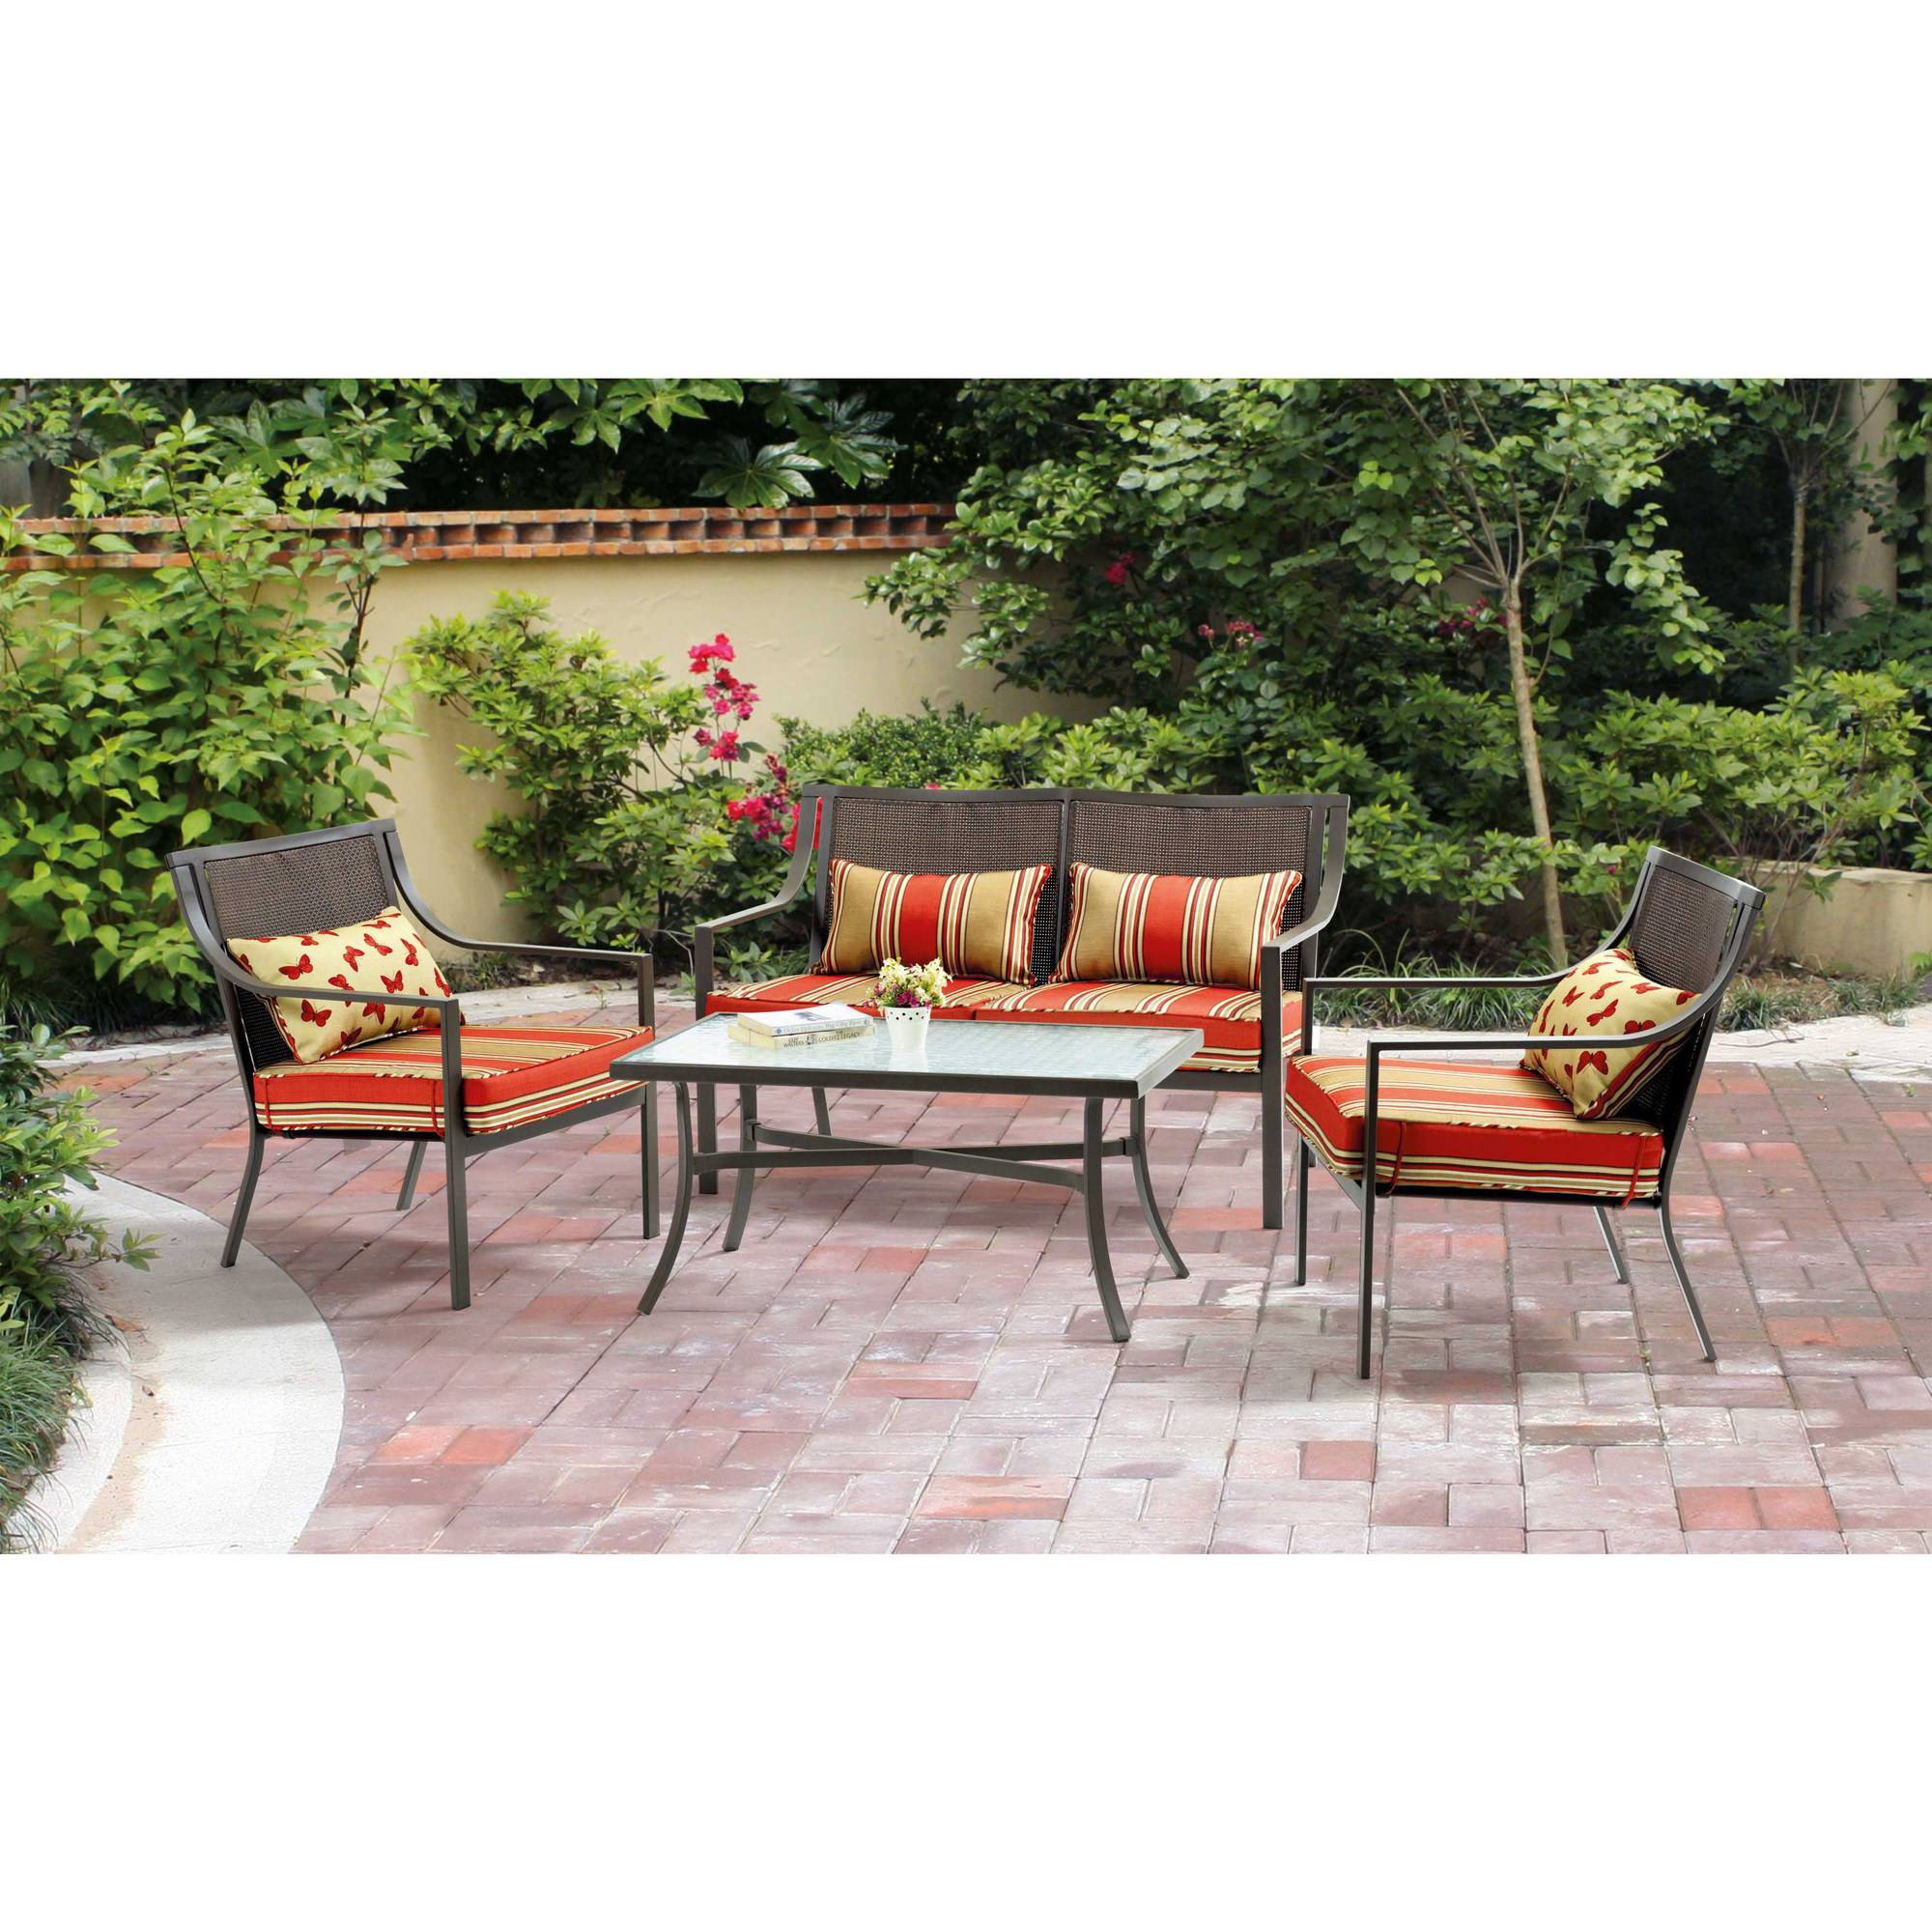 Rose Red Steel Patio Garden Park Bench Outdoor Living Patio Furniture    Walmart.com